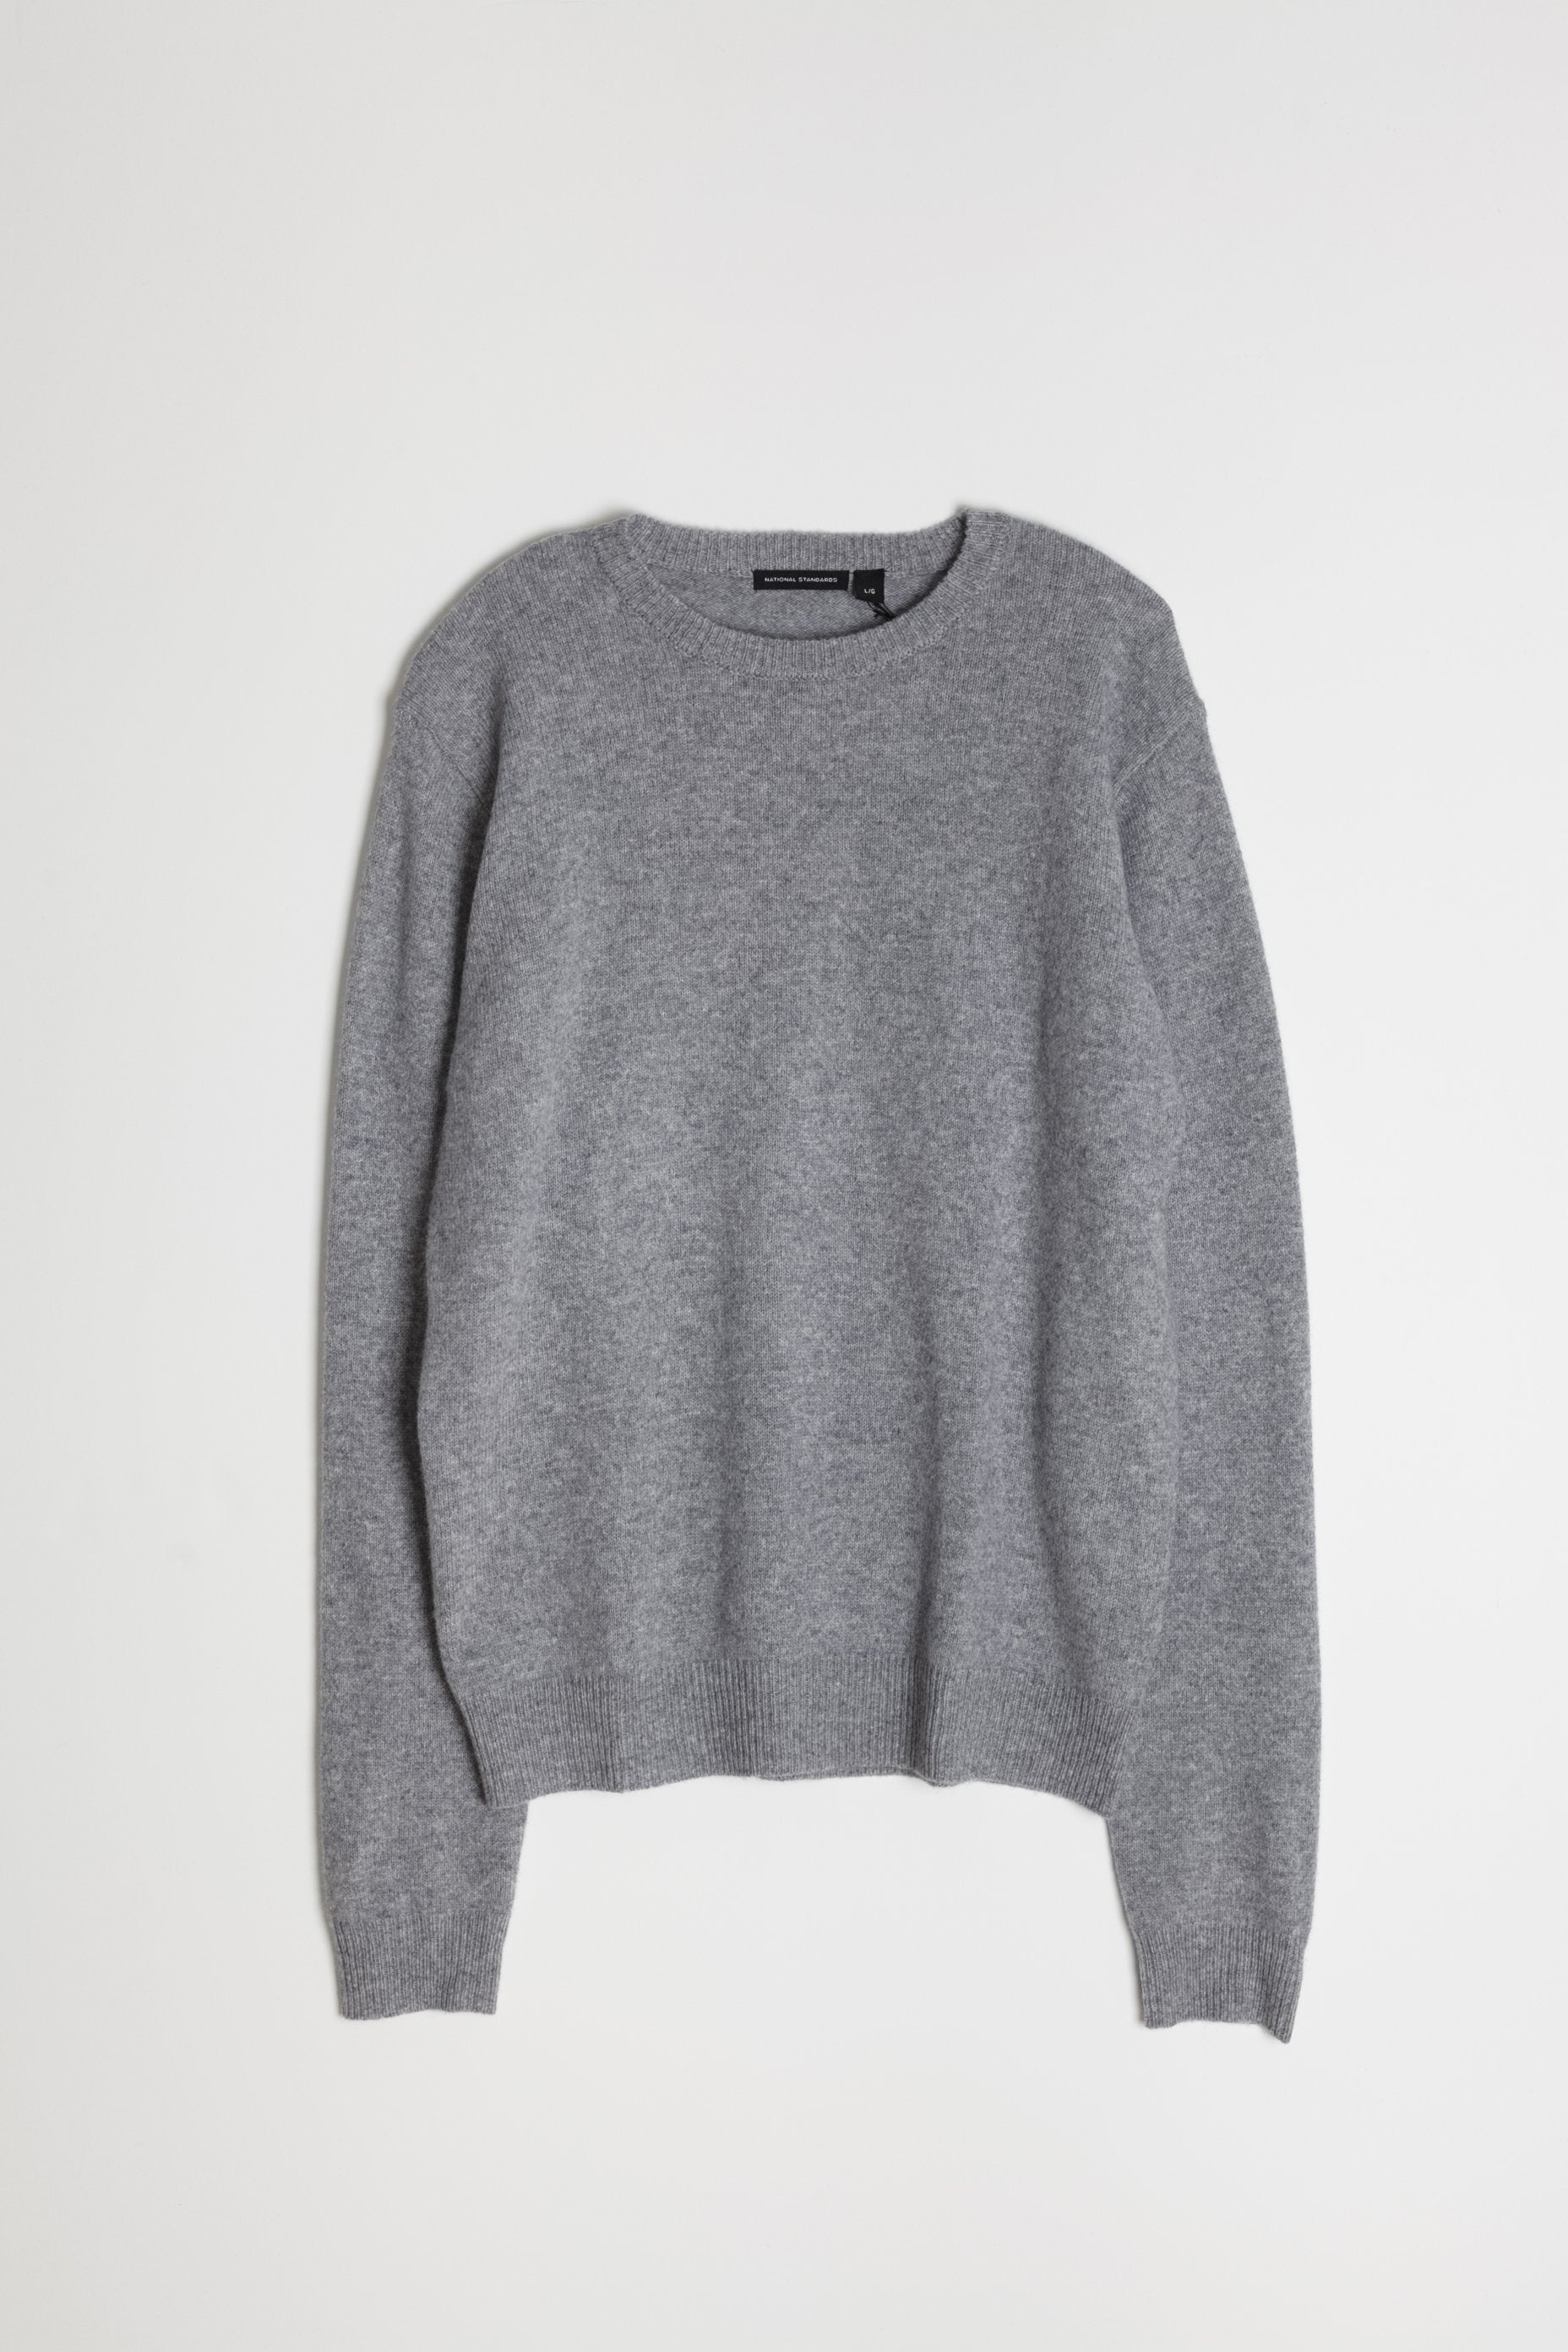 New Wool Crew Neck in Black 06